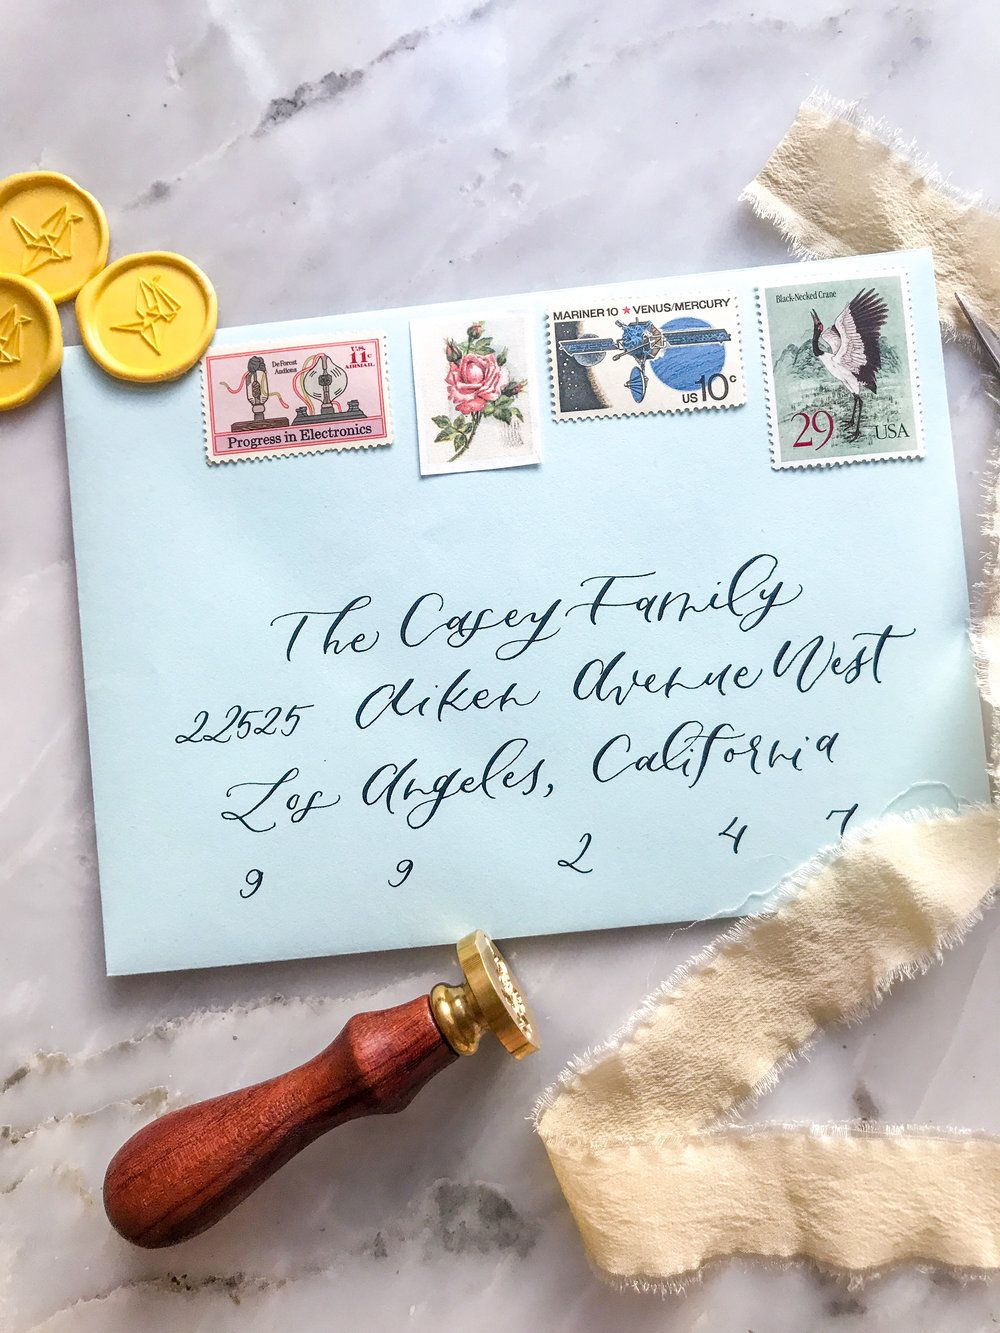 Post Office Woes And How To Avoid Them When Mailing Wedding Invitations Designbylaney Com Wedding Invitations Invitations Wedding Stationery Inspiration